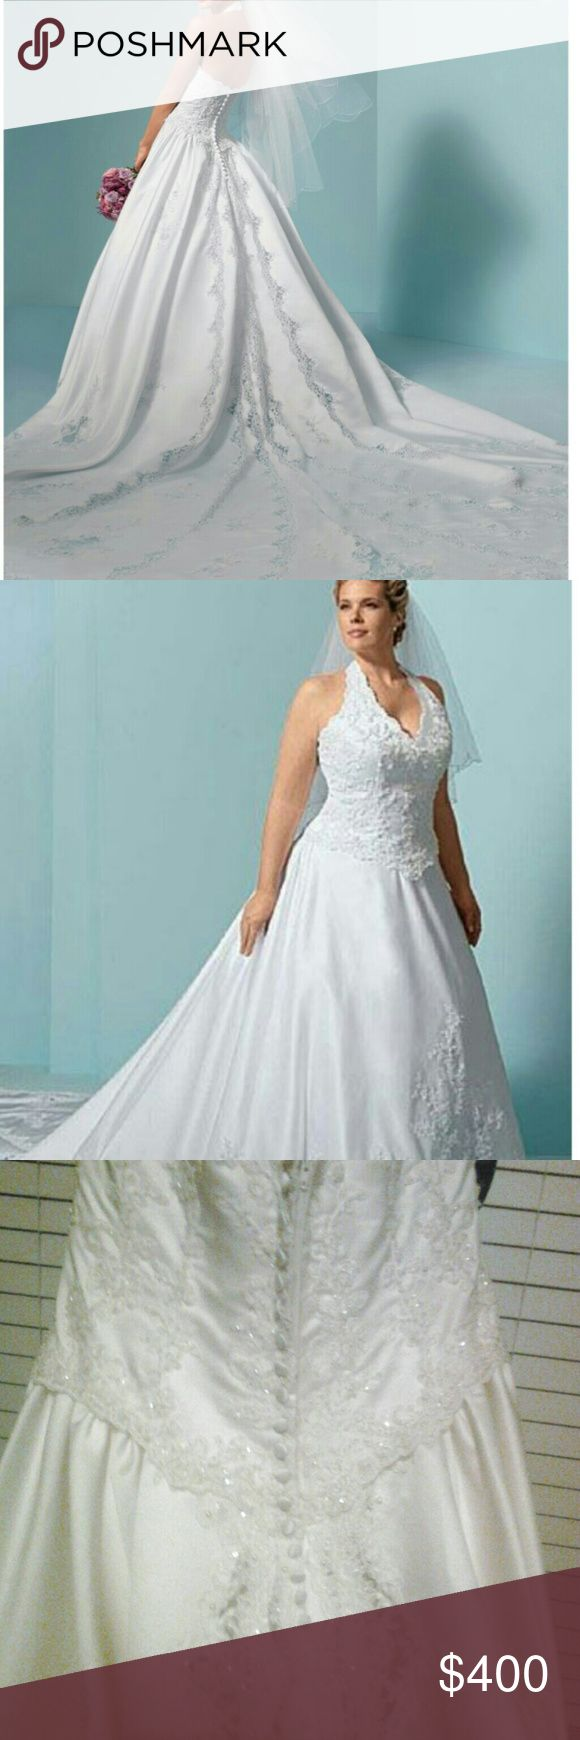 alfred angelo wedding dresses with color » Wedding Dresses Designs ...